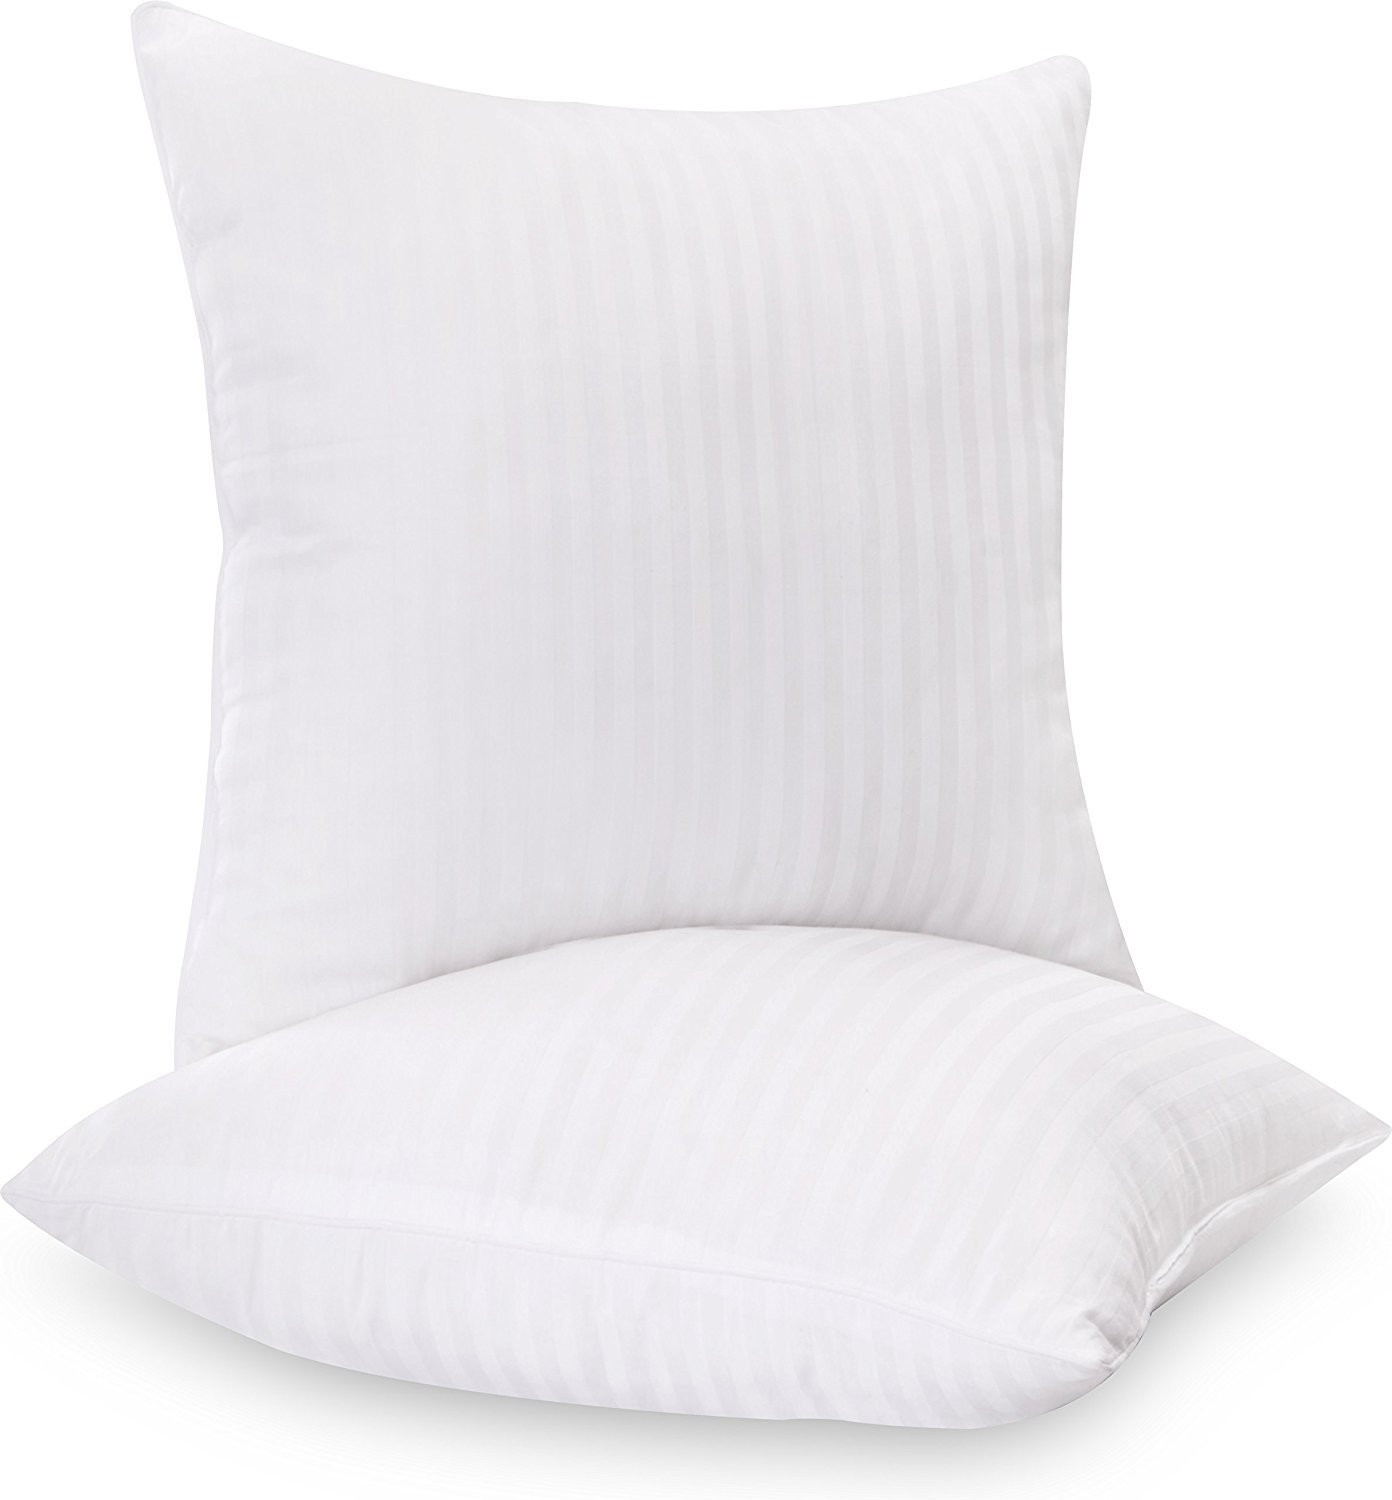 Utopia Bedding Decorative Pillow Insert (2 Pack) - Square 18 x 18 Sofa & Bed Pillow - Polyester Cotton Indoor White Pillows